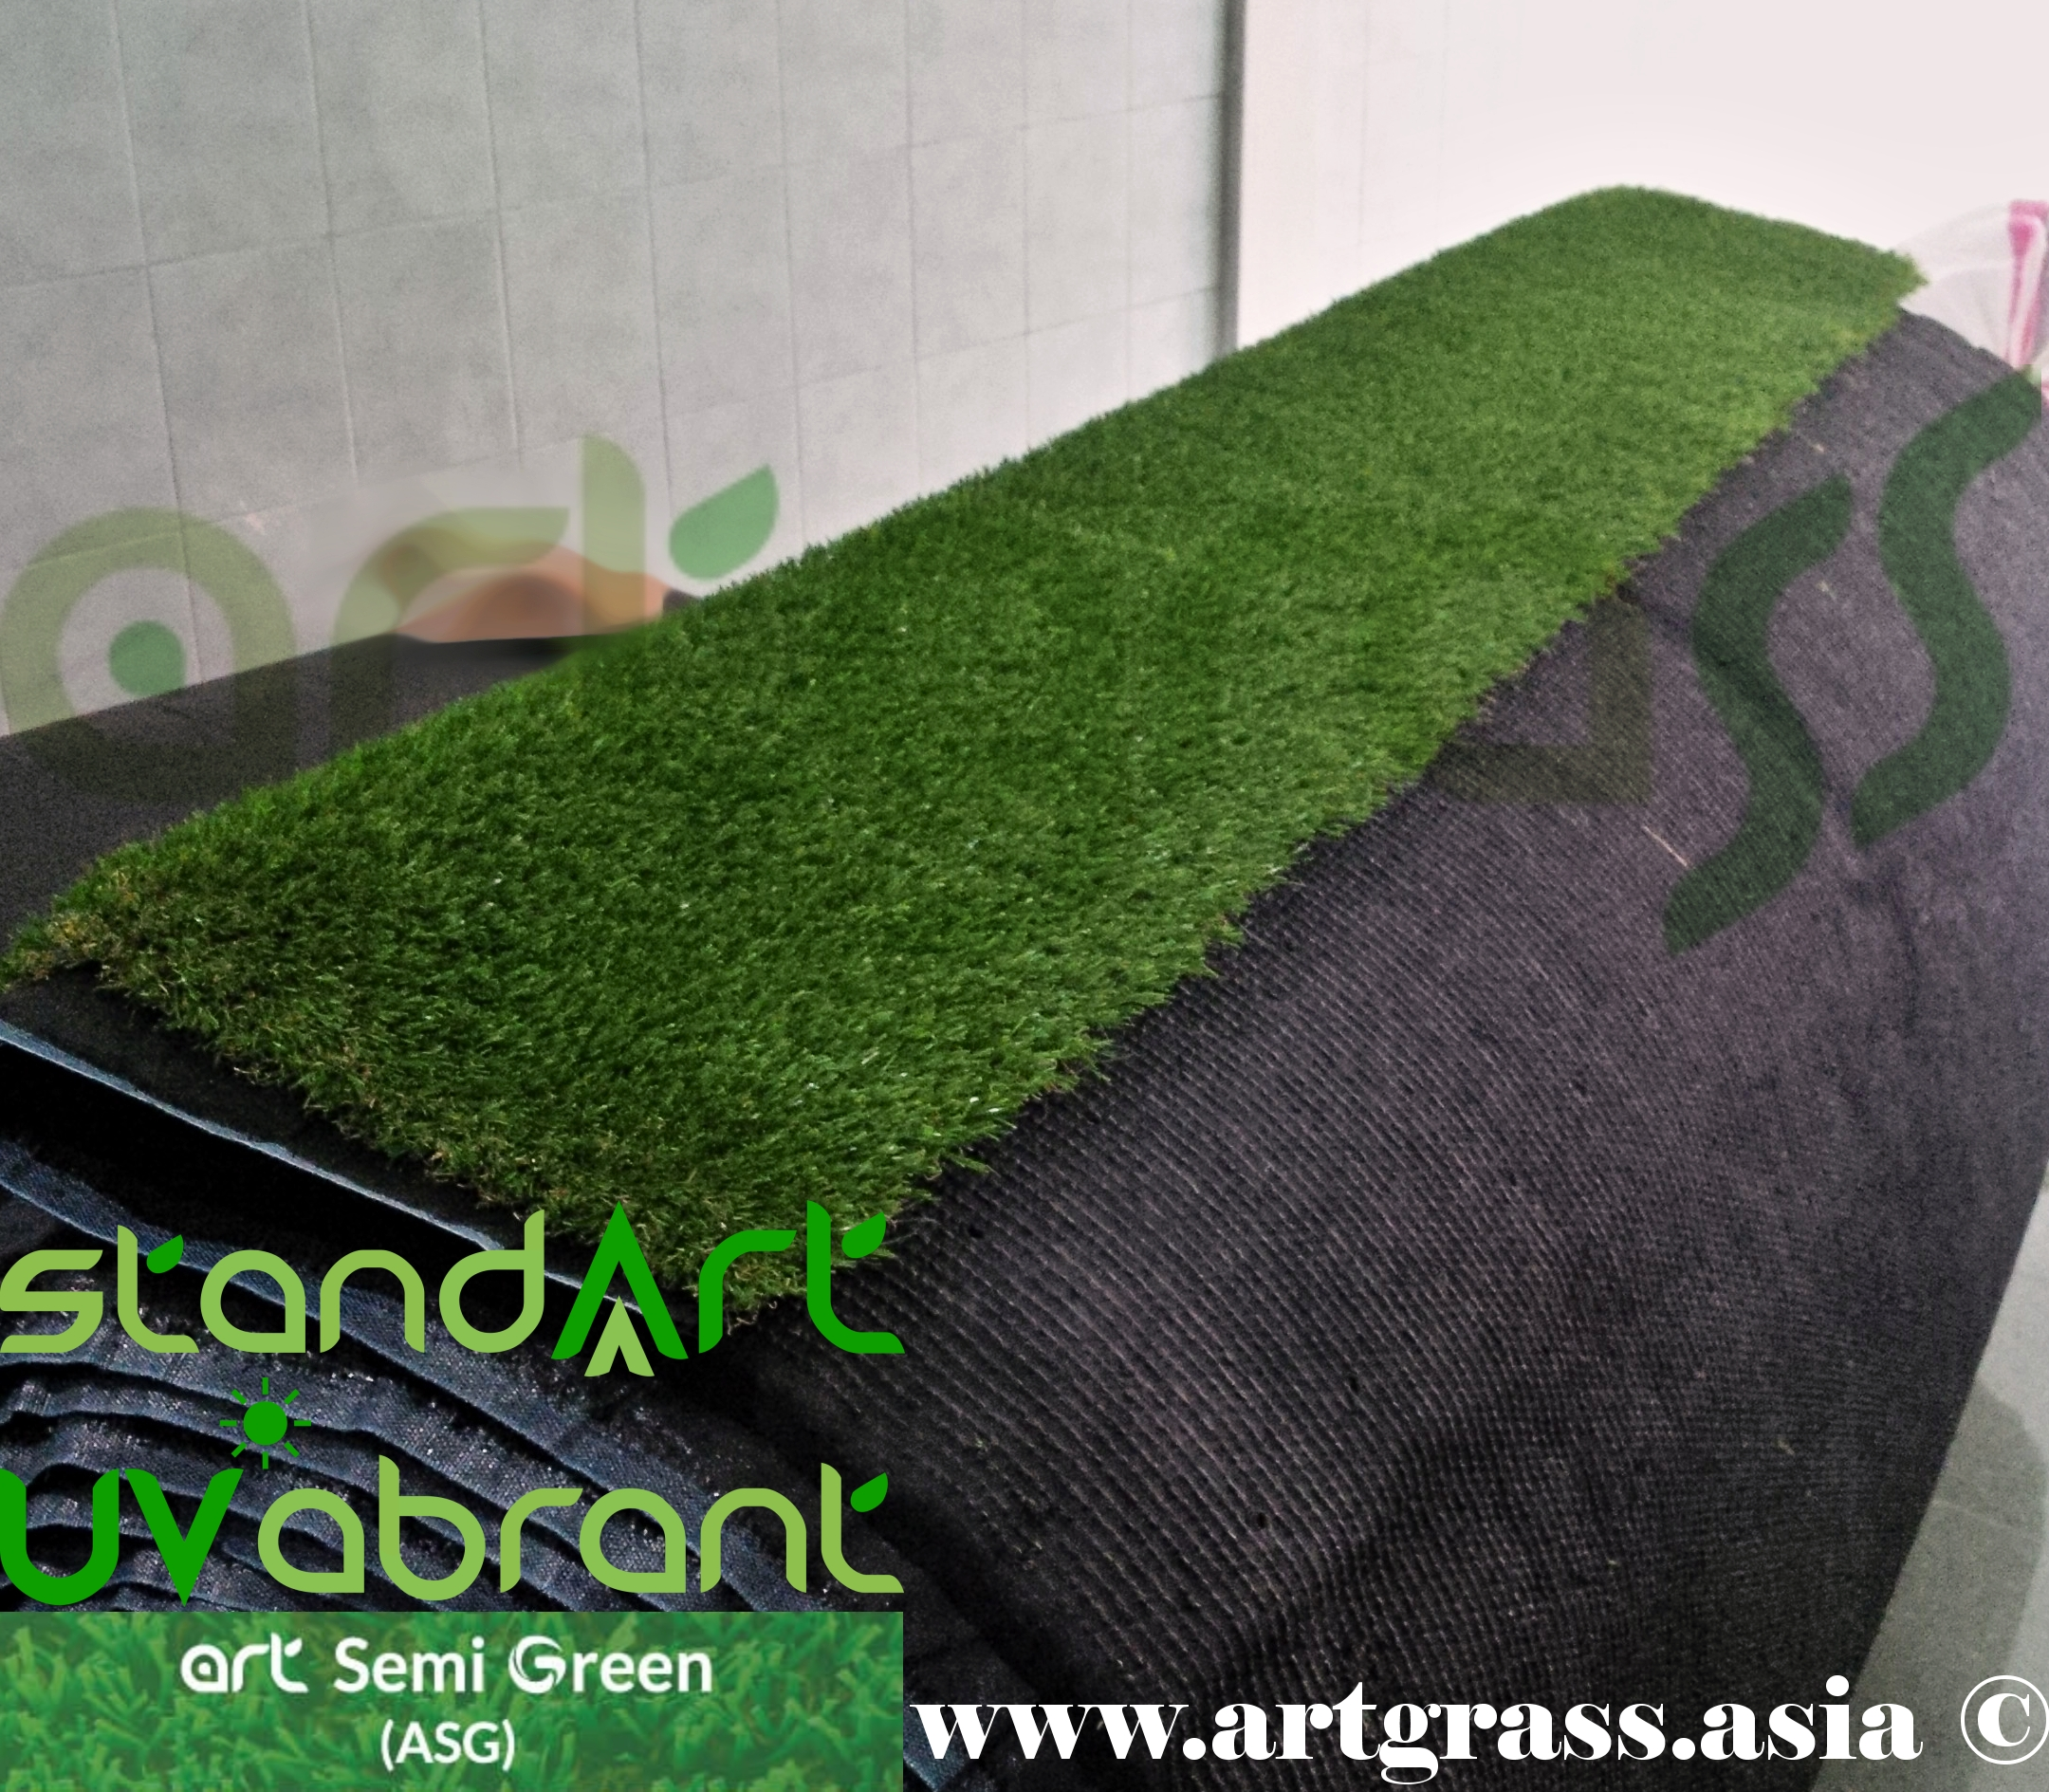 New-ArtSemiGreen-With-StandART